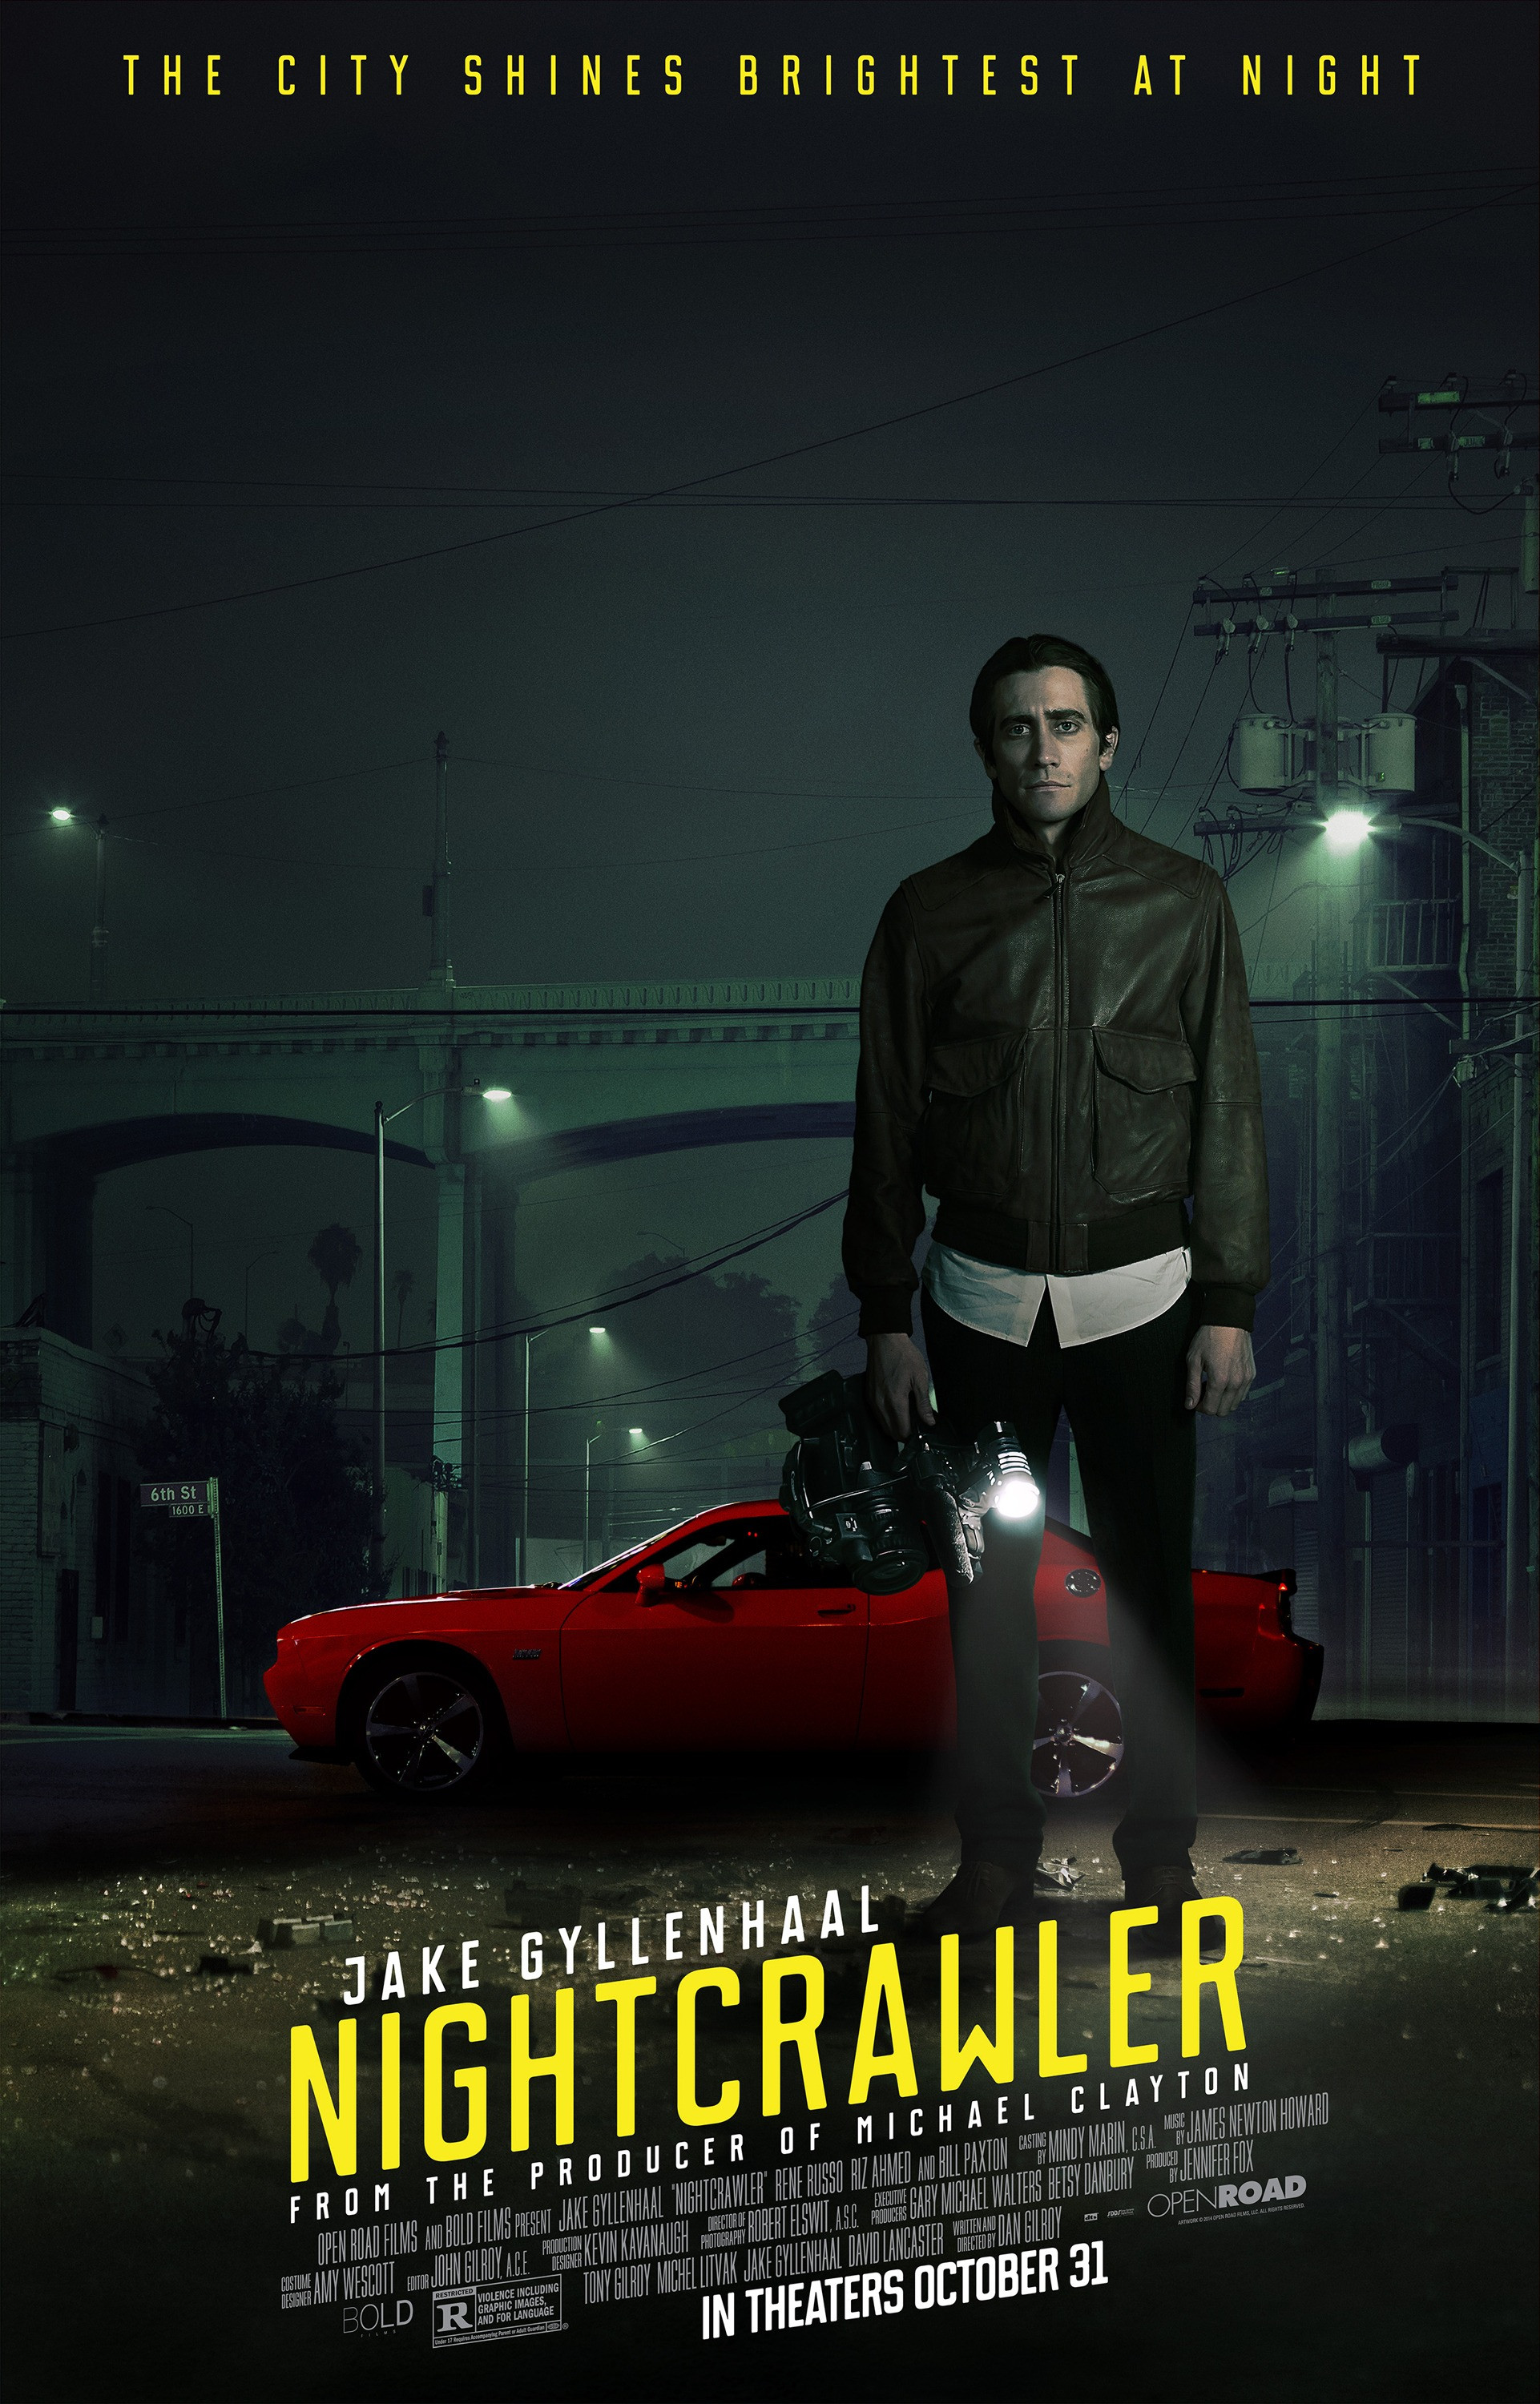 an interpretation of dan gilroys nightcrawler Roman j israel, esq is a 2017 american legal drama film written and directed by dan gilroy he is gifted with a phenomenal memory as well as strong personal convictions on the meaning of justice.